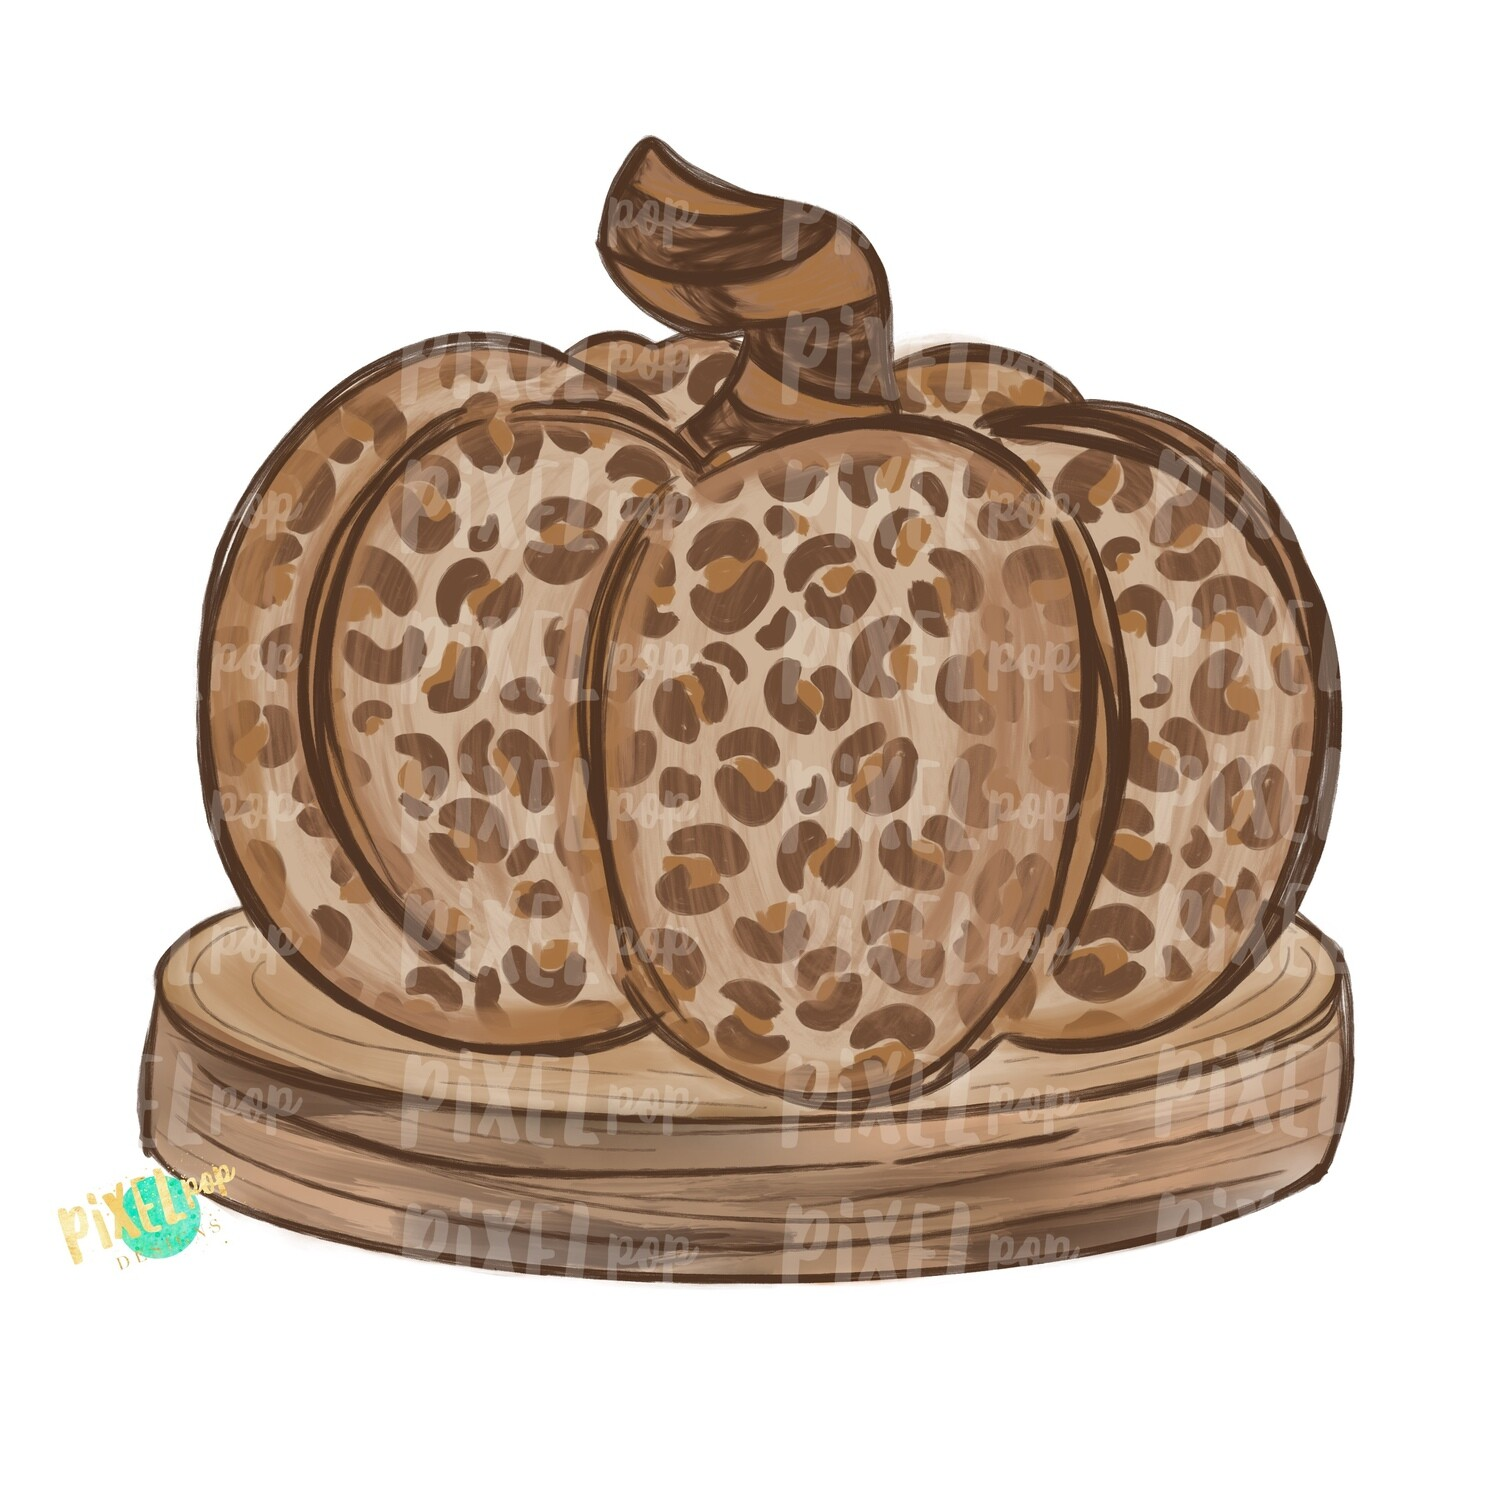 Leopard Print Pumpkin on Wood Slice PNG | Cheetah Print Pumpkin |Hey Pumpkin Orange Colorful Pumpkin PNG | Hand Painted Art | Fall Design | Fall Art | Sublimation PNG | Digital Art | Printable Artwork